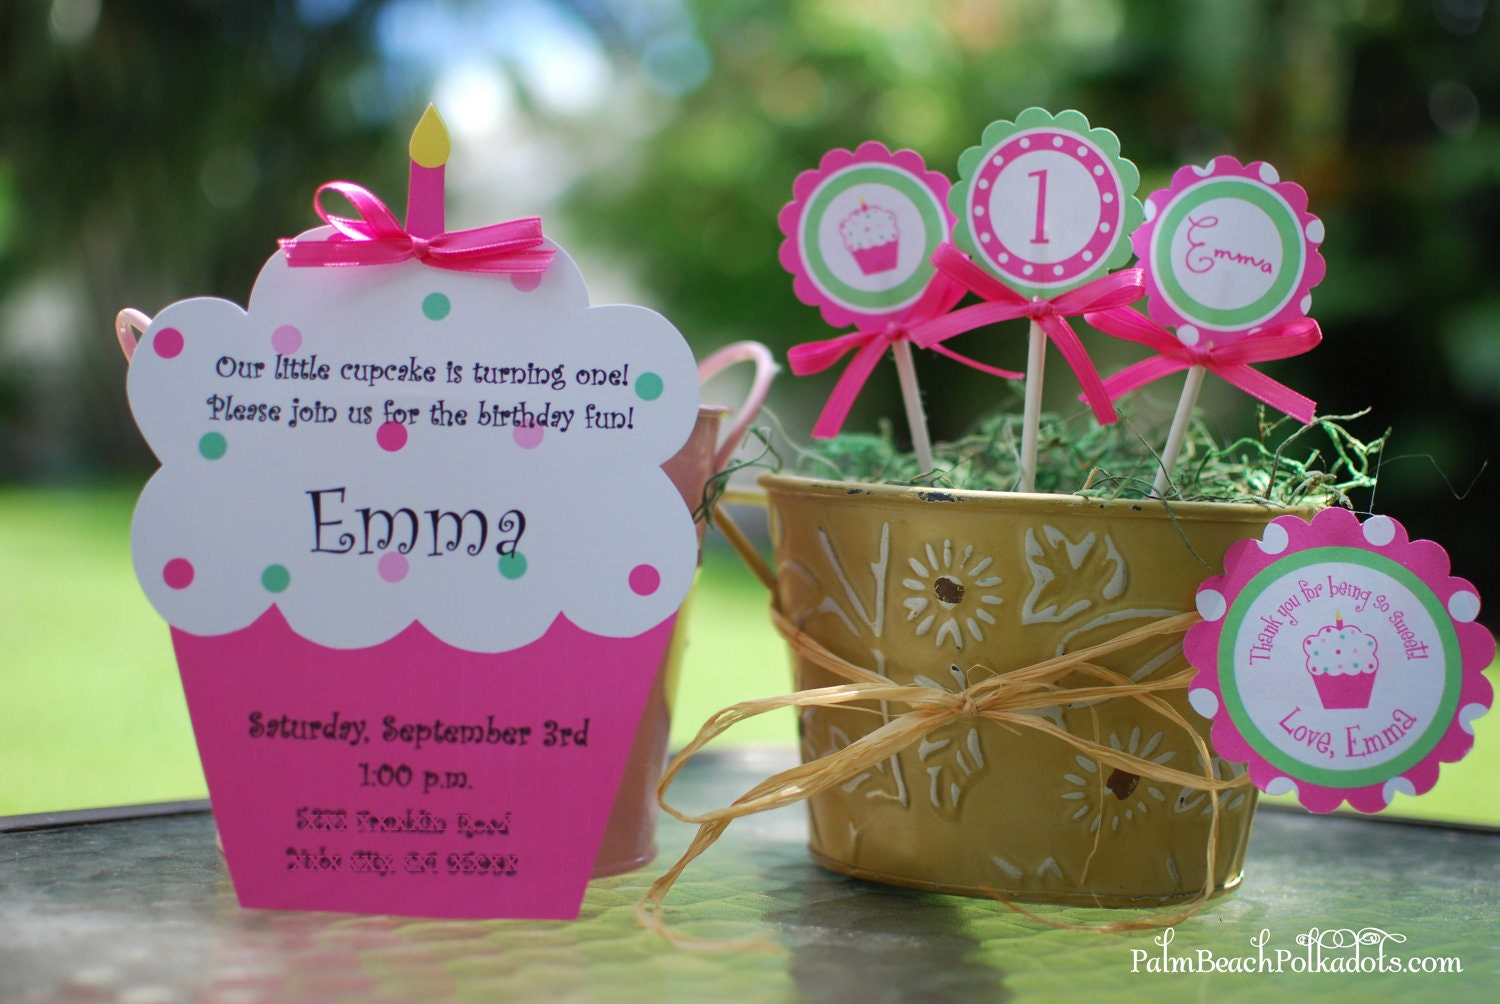 Cupcake Birthday Invitations correctly perfect ideas for your invitation layout